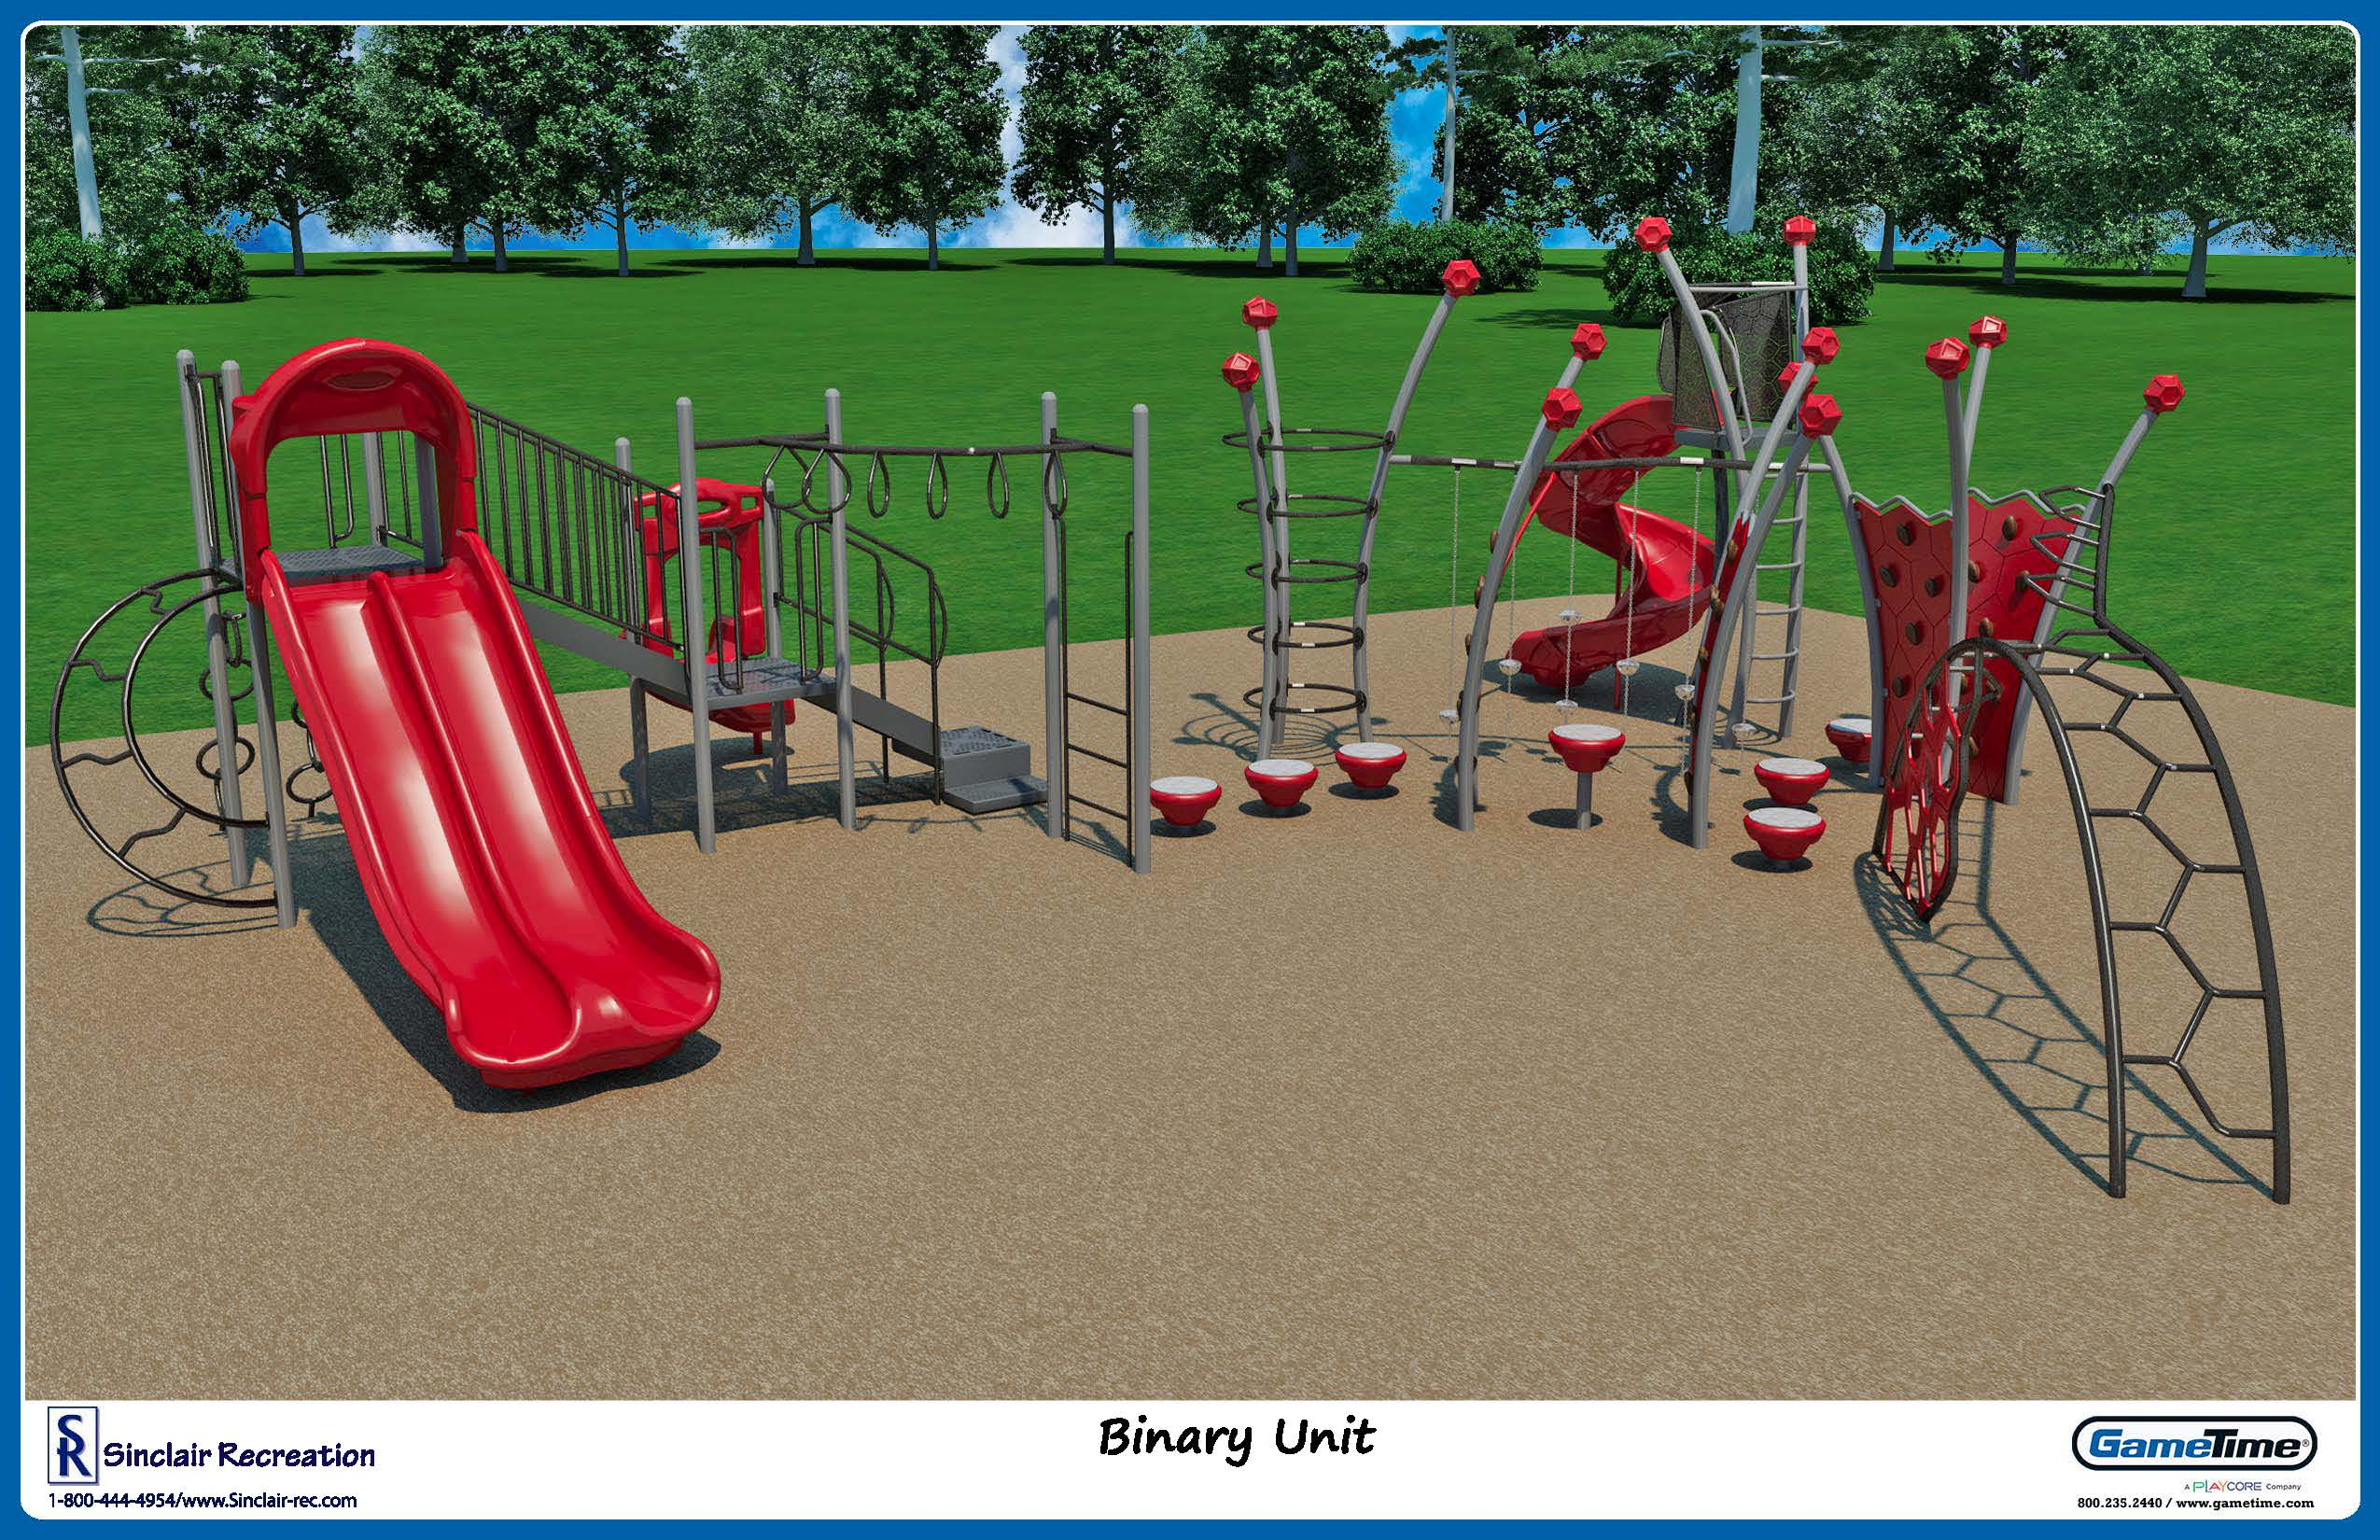 Playground Image Two